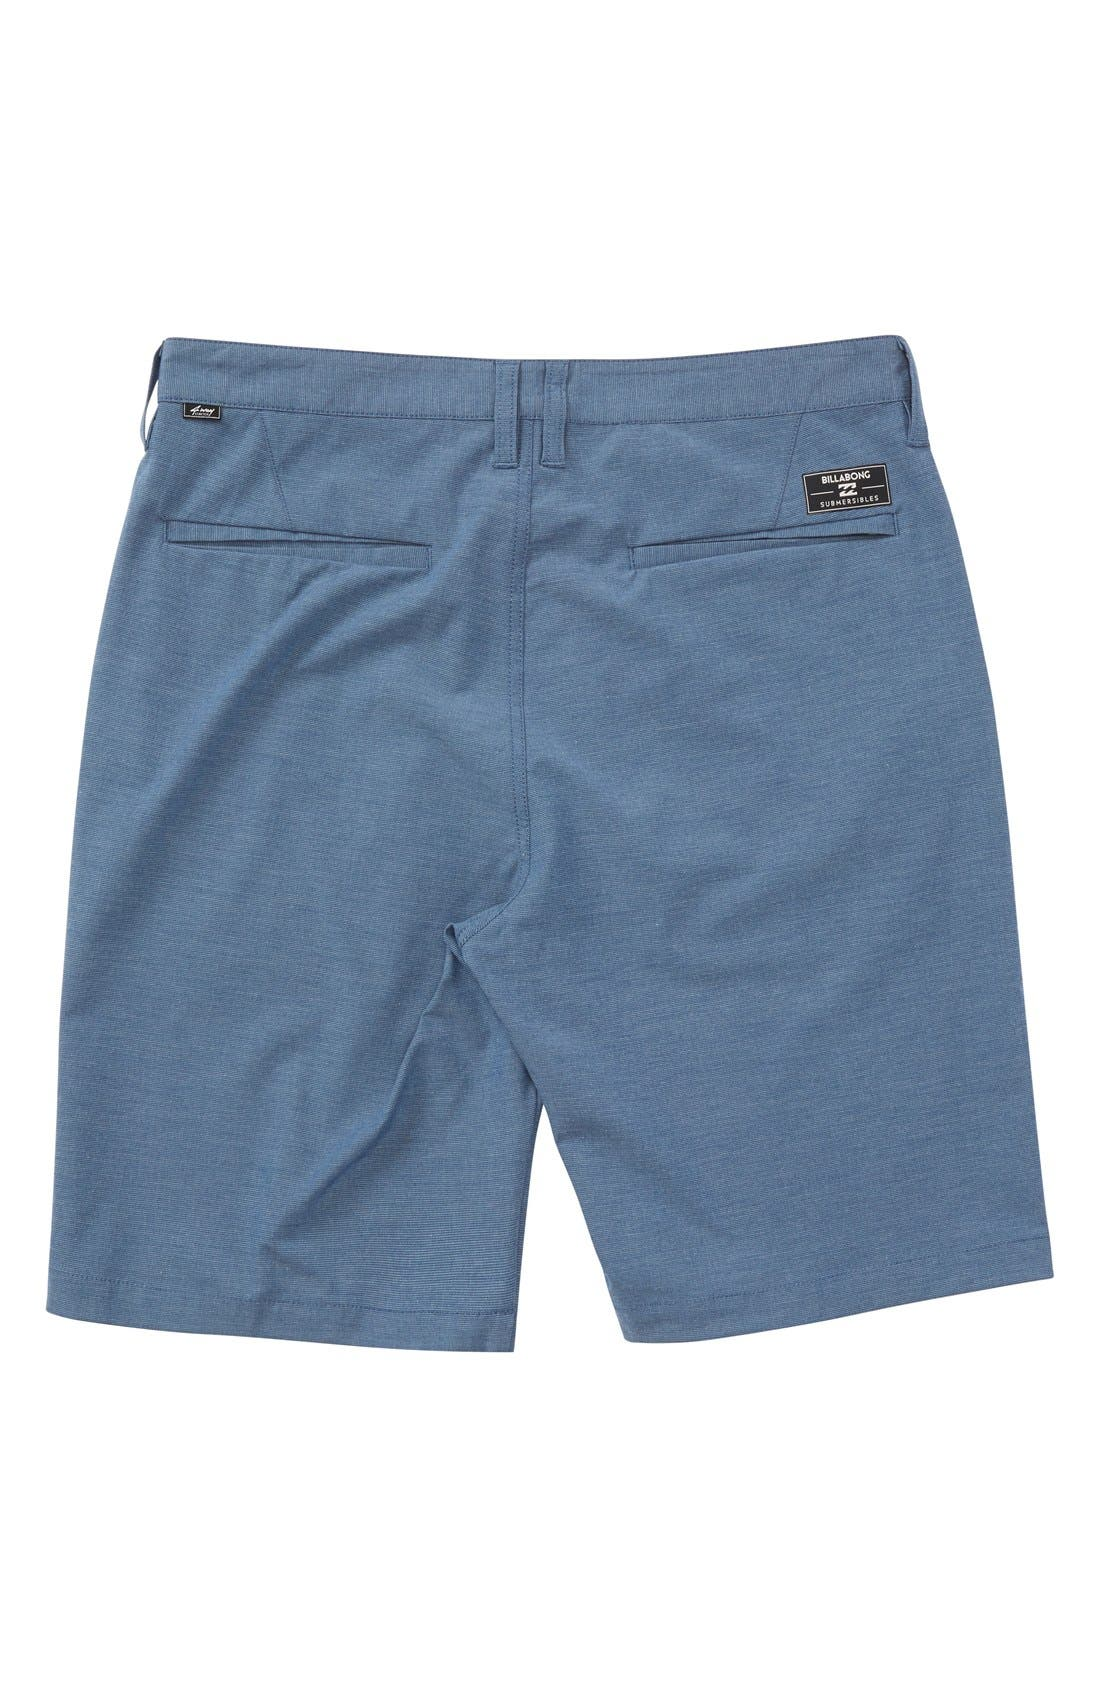 Crossfire X Submersible Hybrid Shorts,                             Alternate thumbnail 18, color,